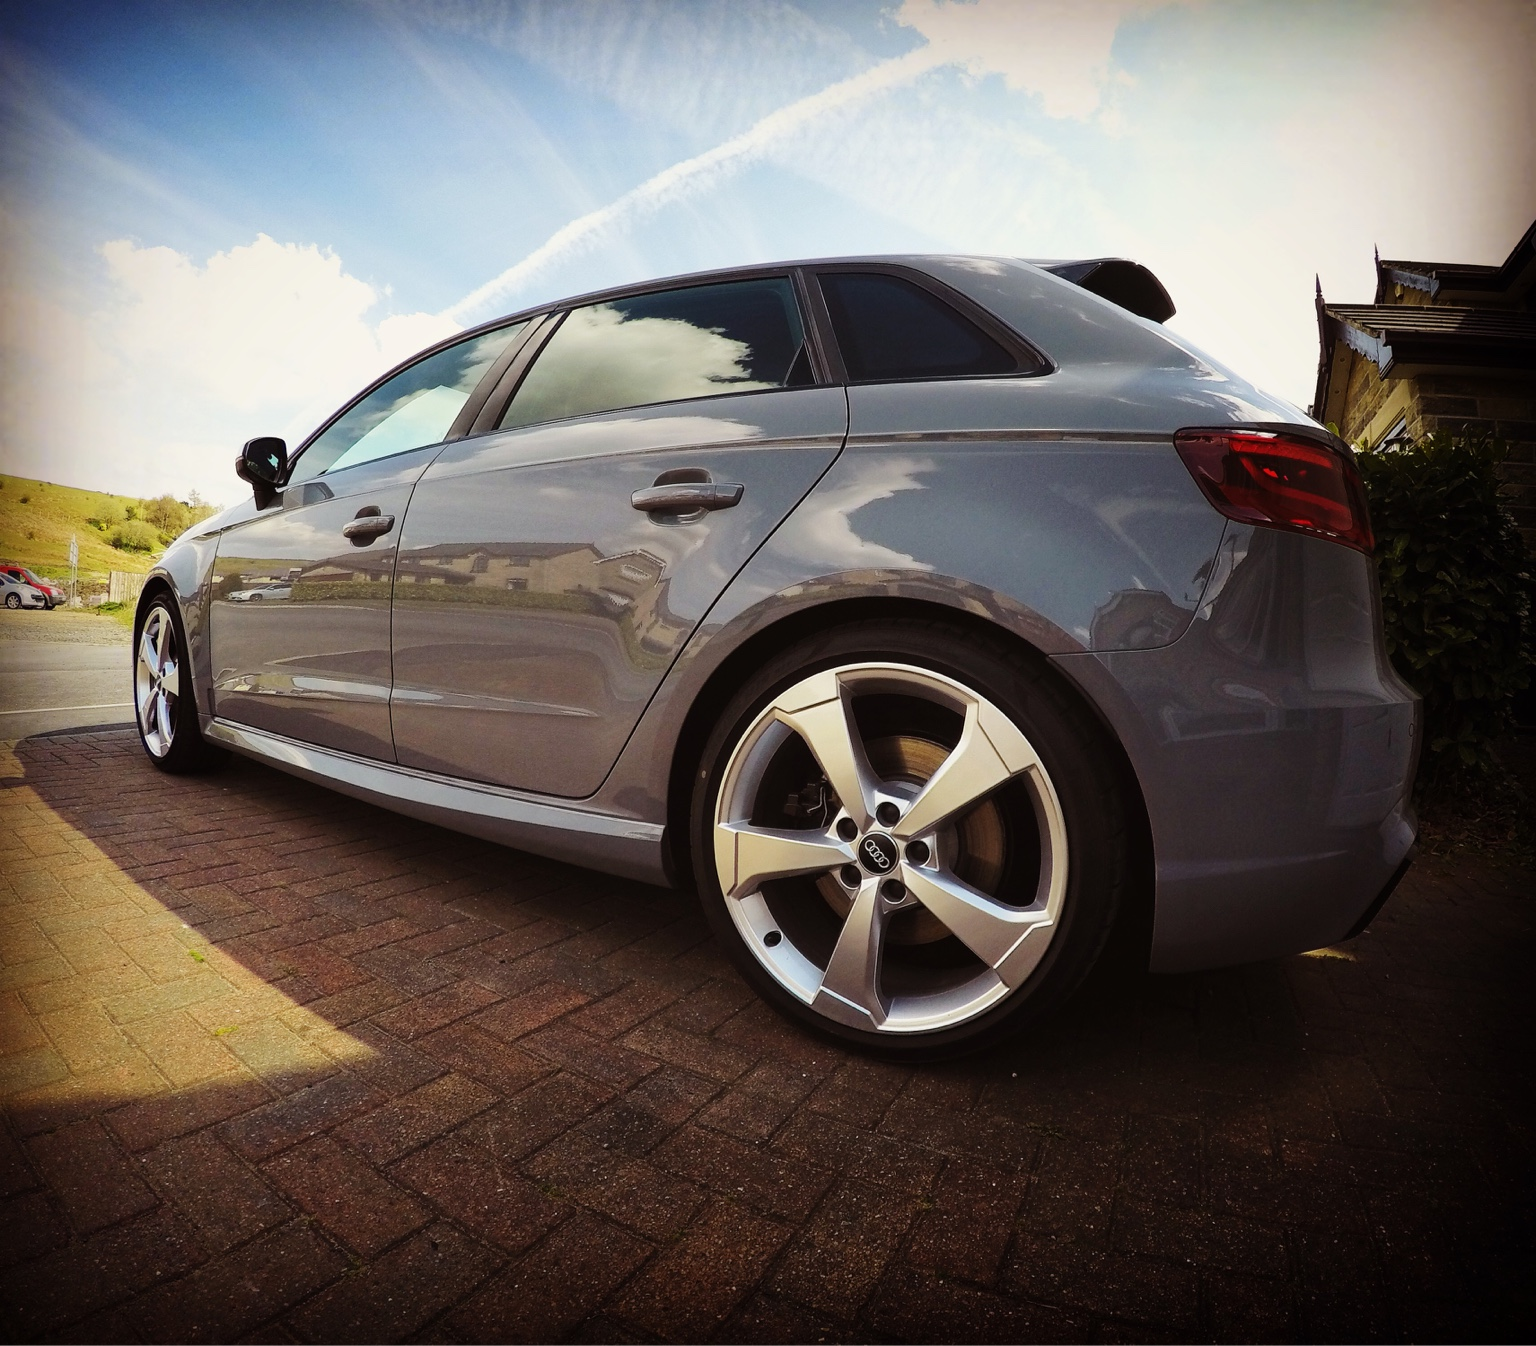 rik 39 s nardo thread members rides garage official audi rs3 owners club forum. Black Bedroom Furniture Sets. Home Design Ideas